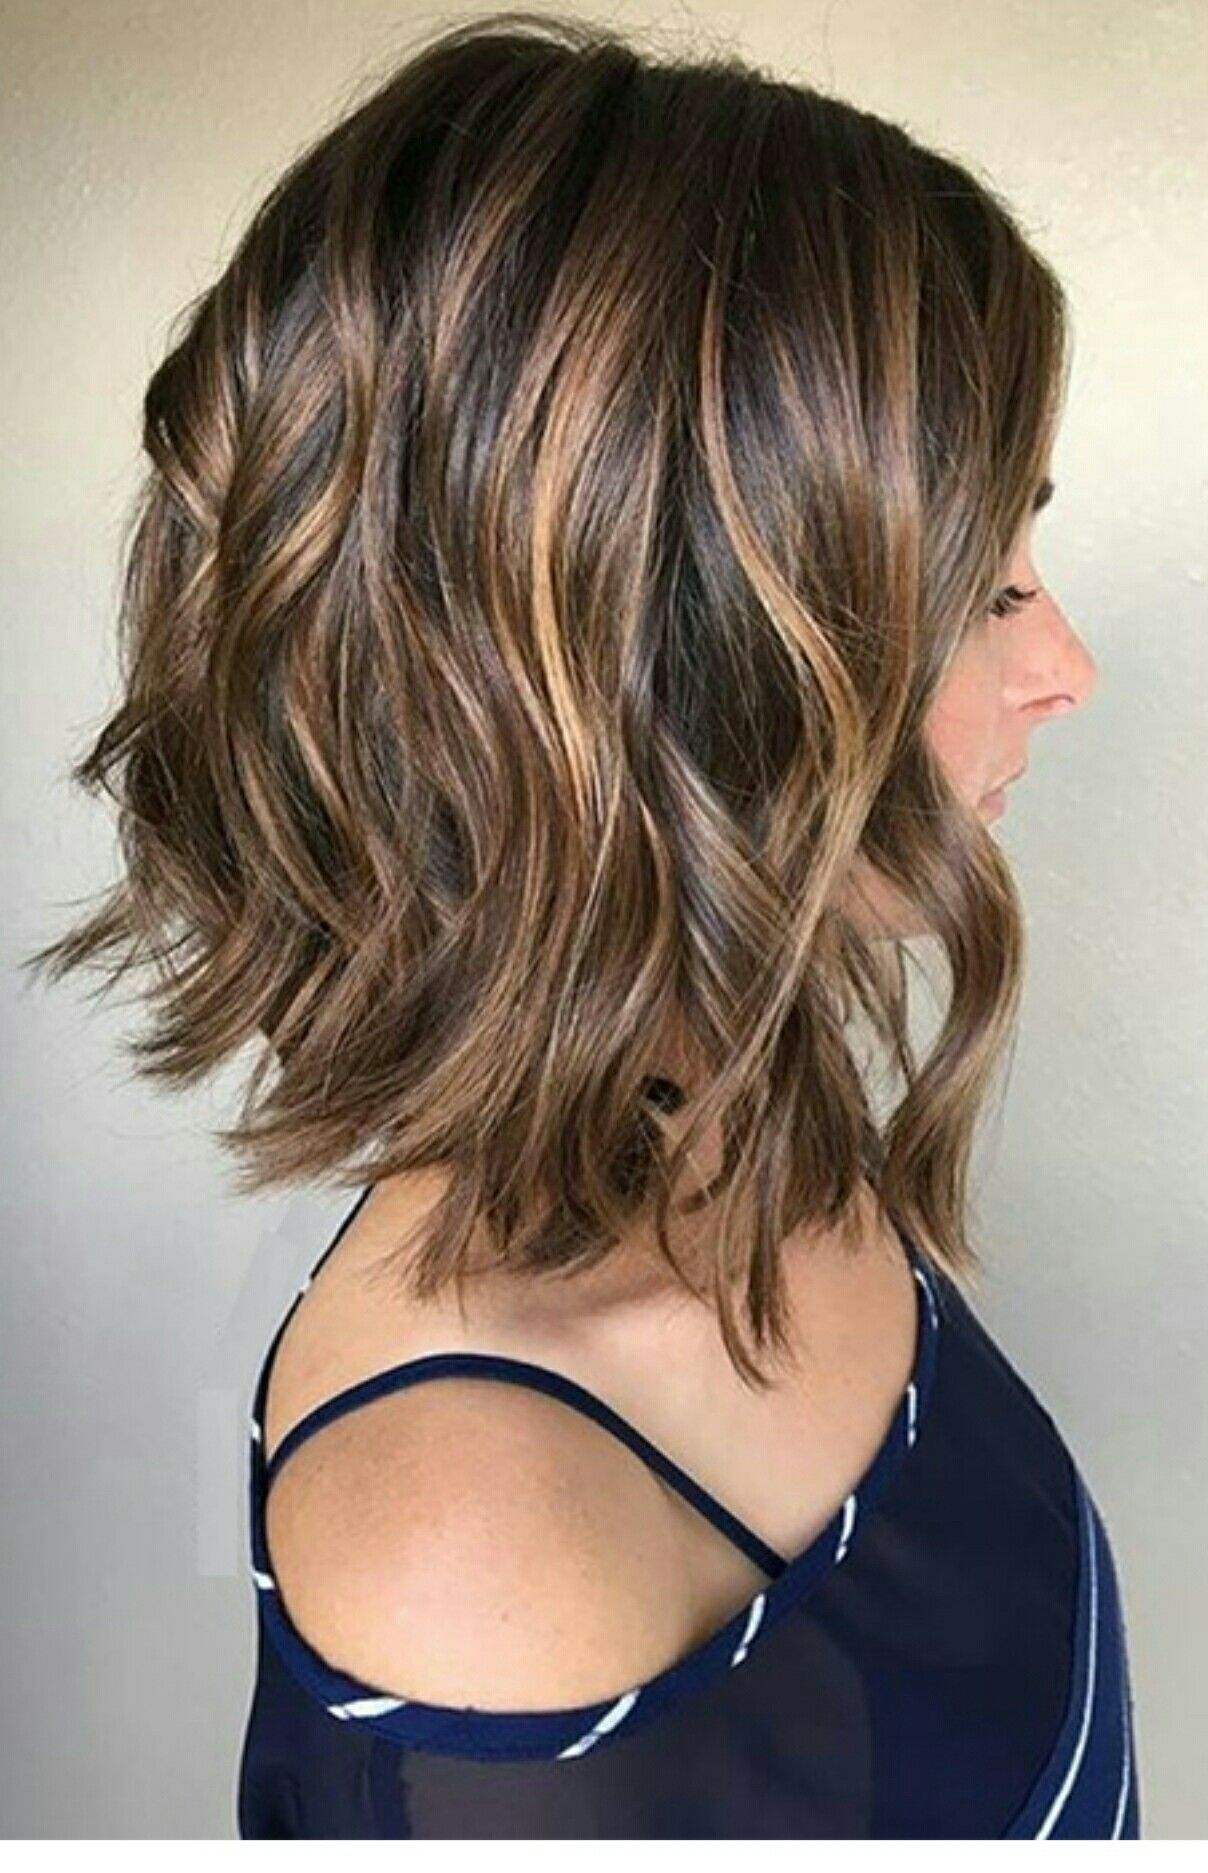 Pin by keisha haisch white on hair ideas pinterest haircuts